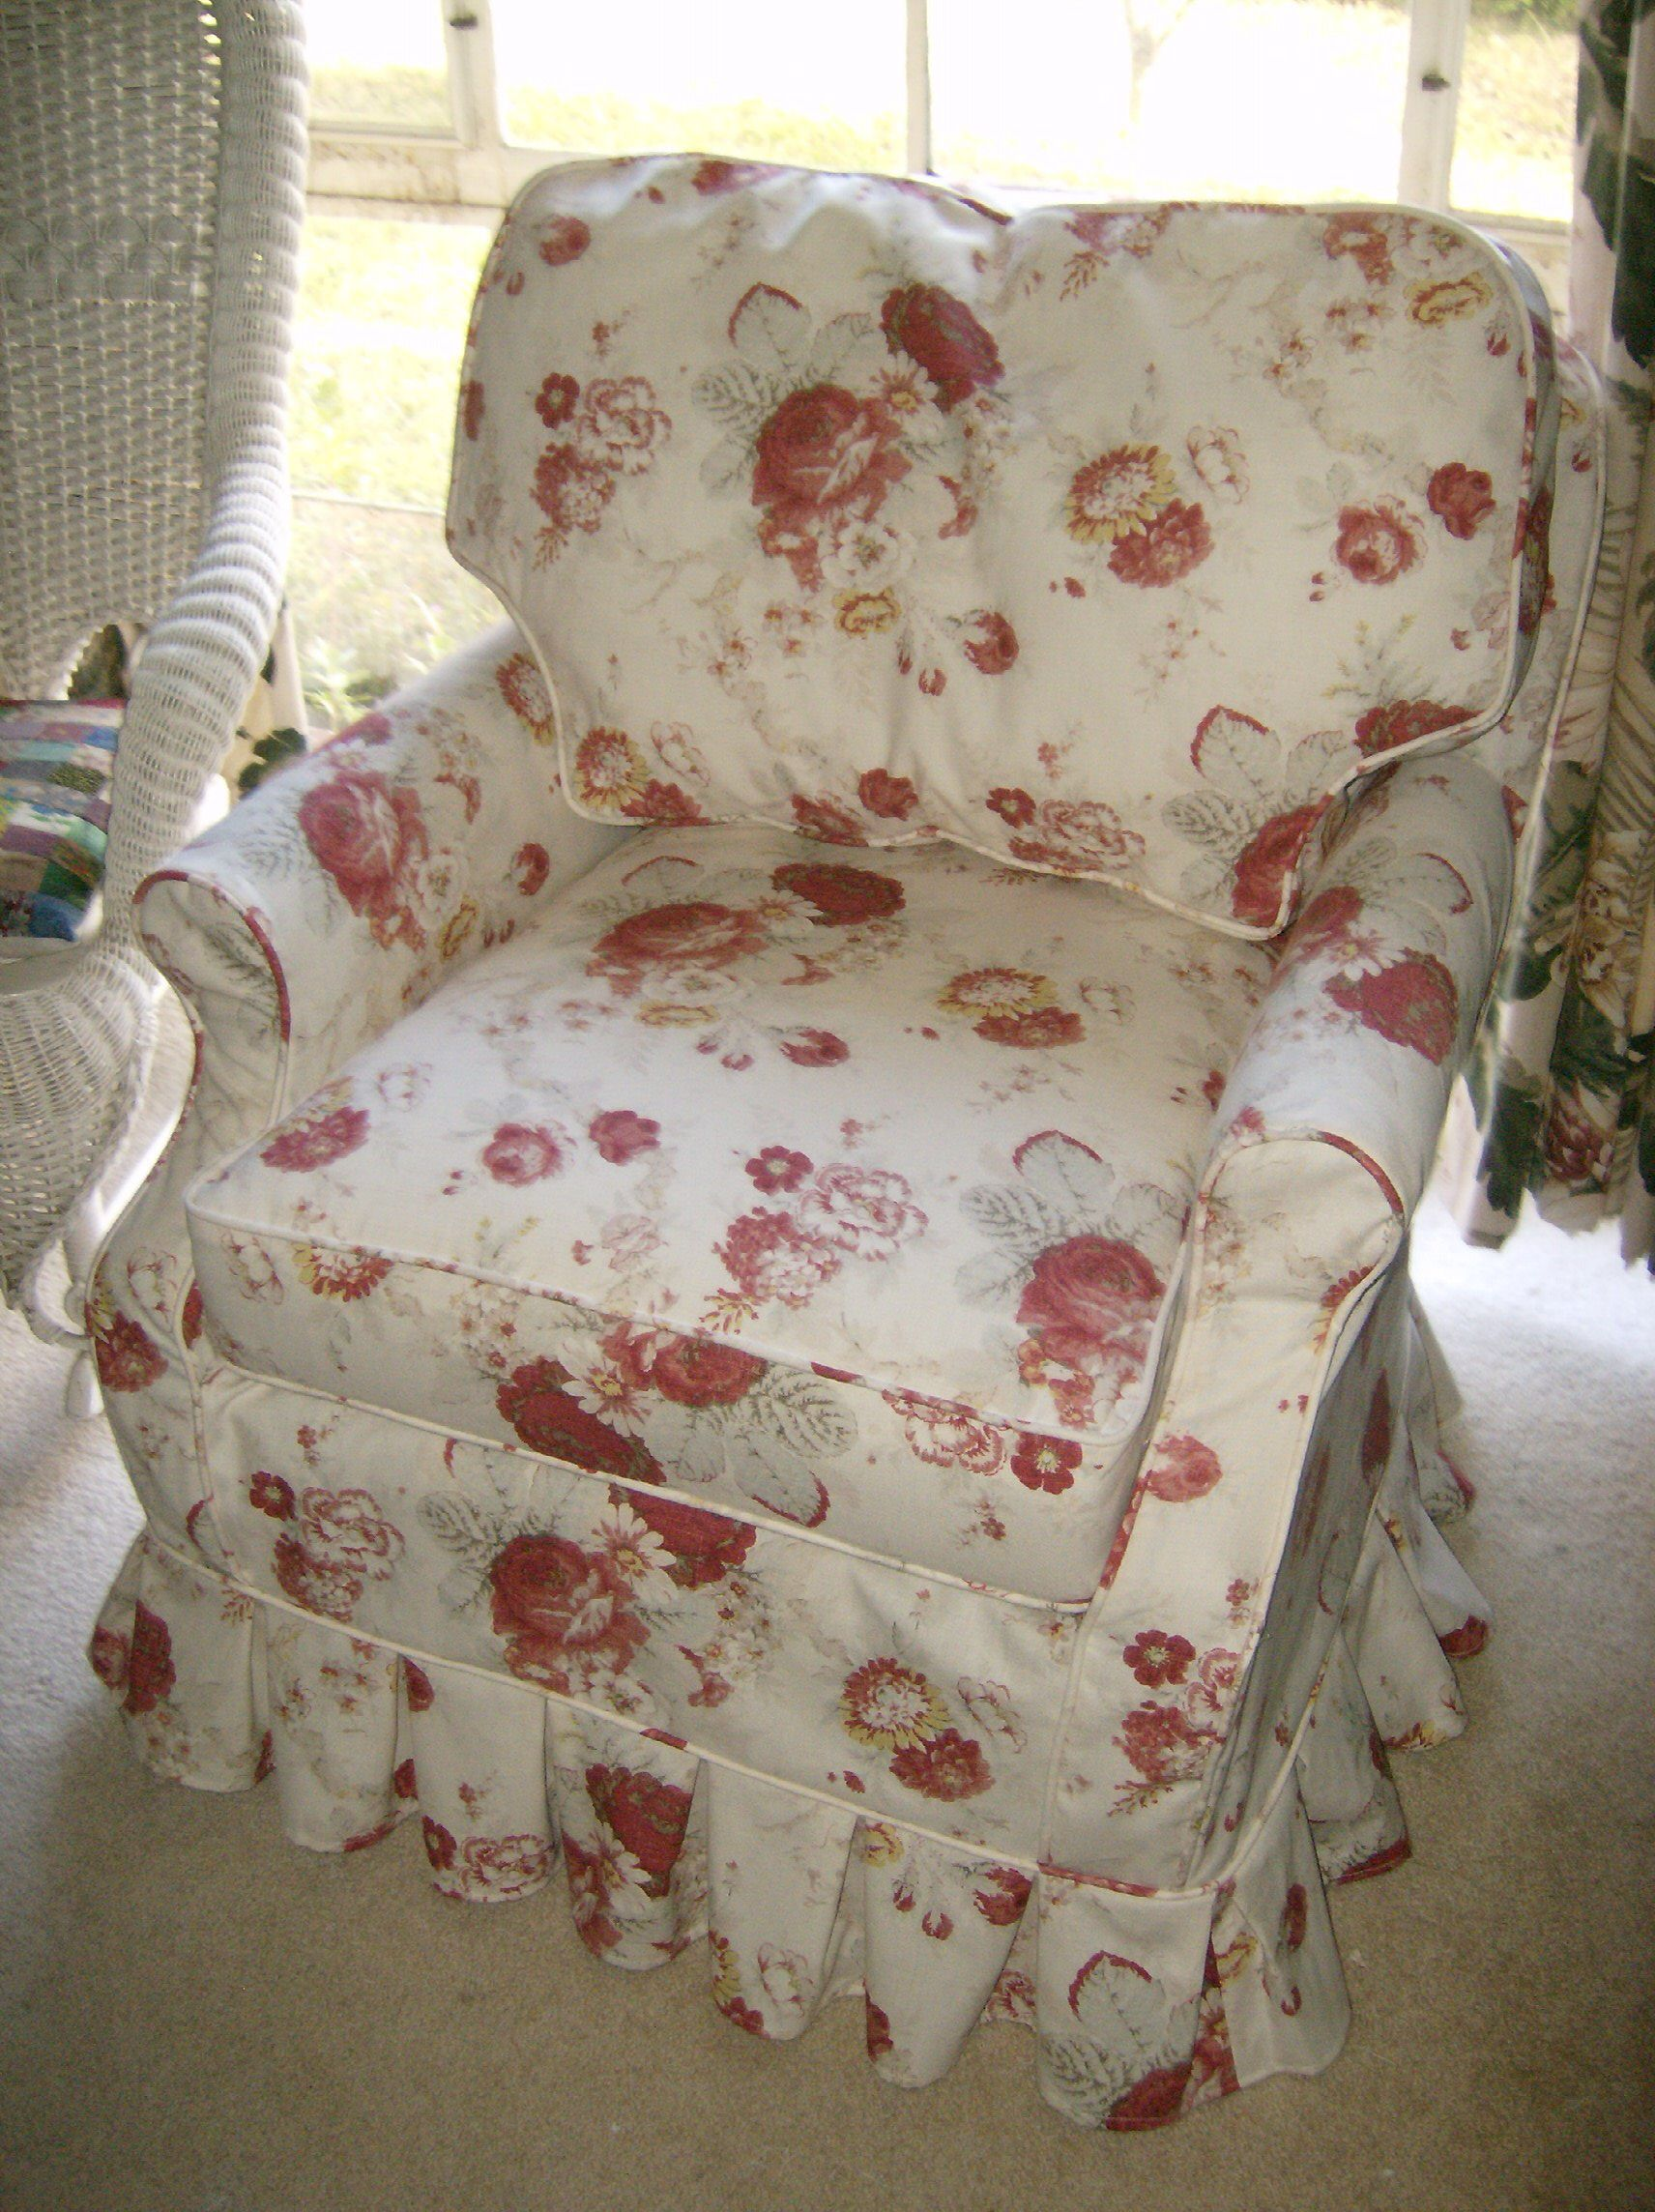 Waverly S Garden Room Slipcover By Chici S Cottage Style Winter Park Fl Slipcovers Shabby Chic Cottage Style